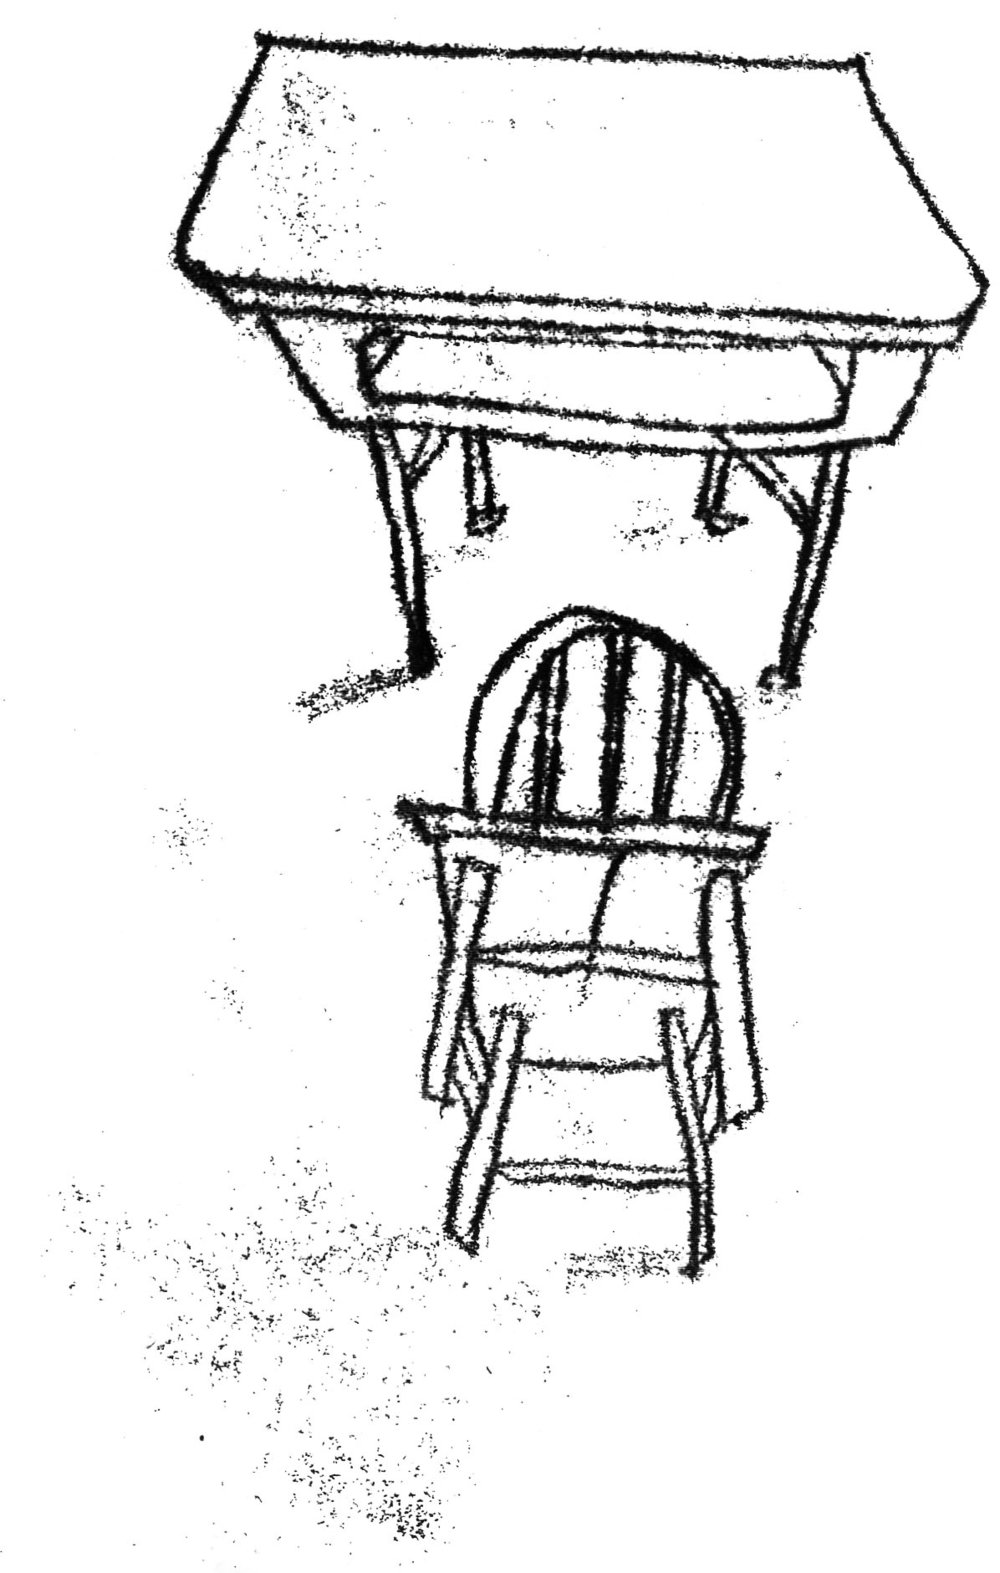 11_chair_desk2_trace_6x4.jpg